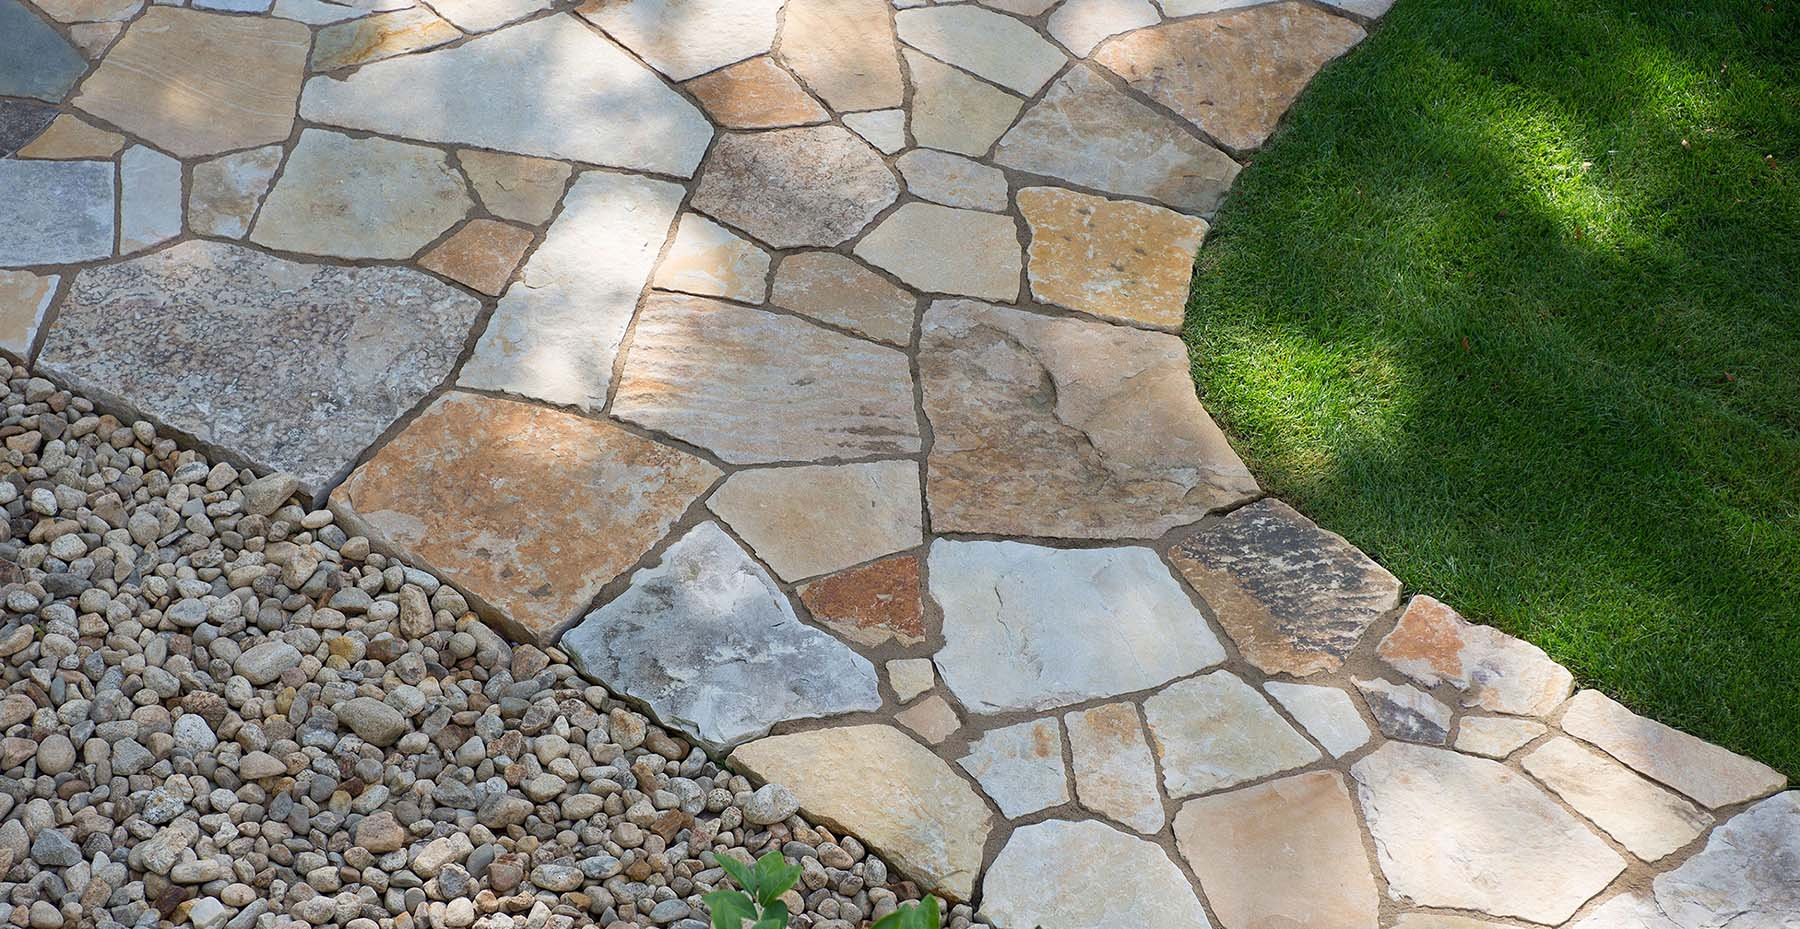 South Bay Quartzite Natural Stone Flagging/ Outdoor Patio